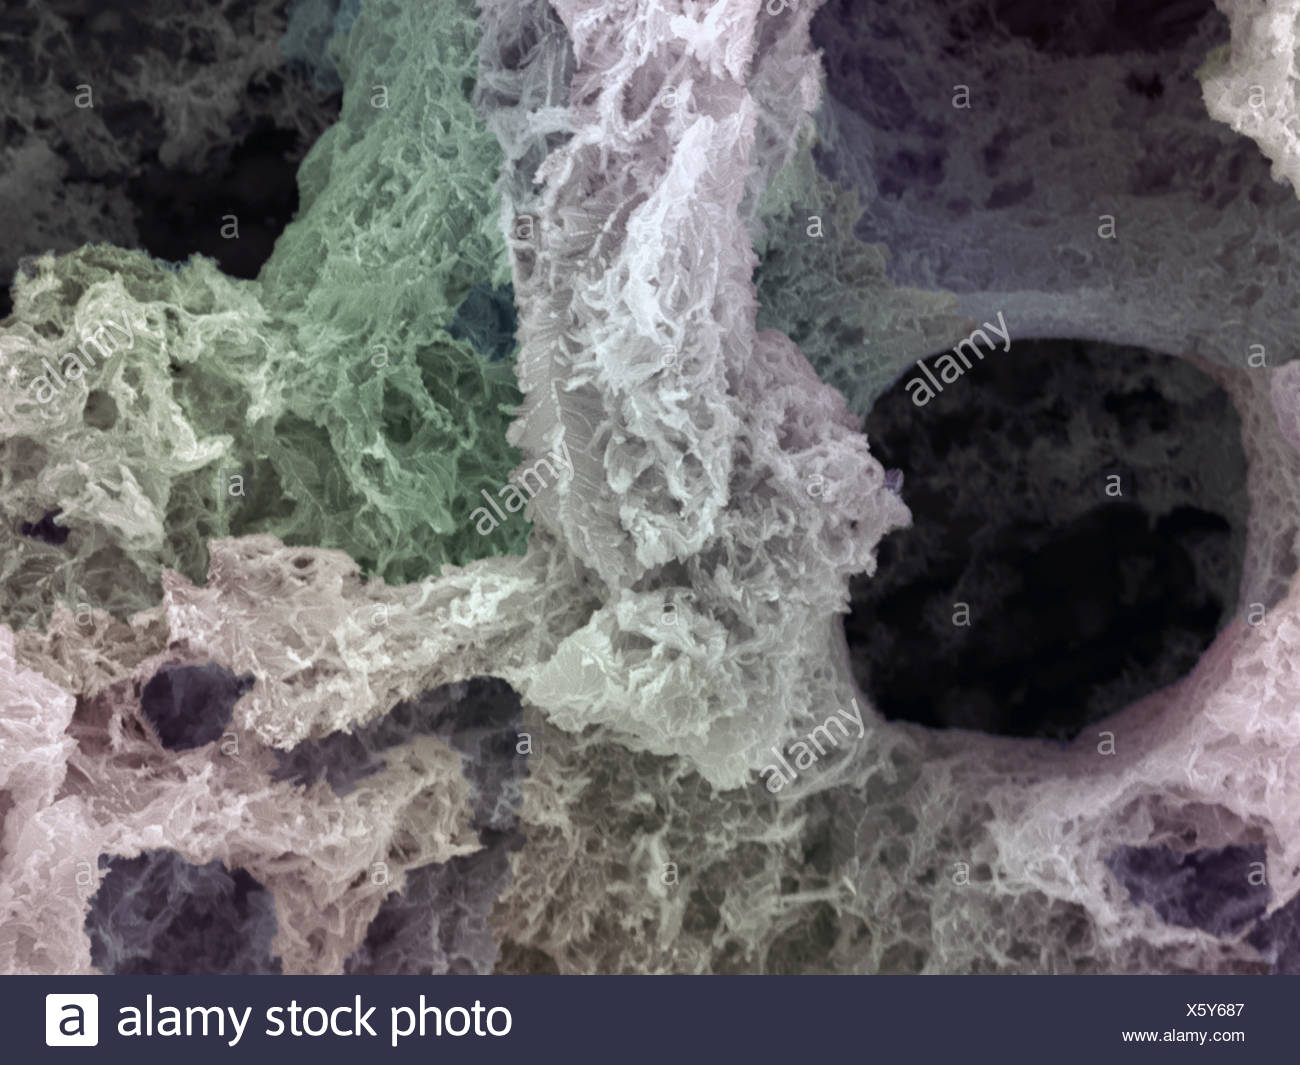 SEM of chemically deposited Silver on metallic substrates - Stock Image